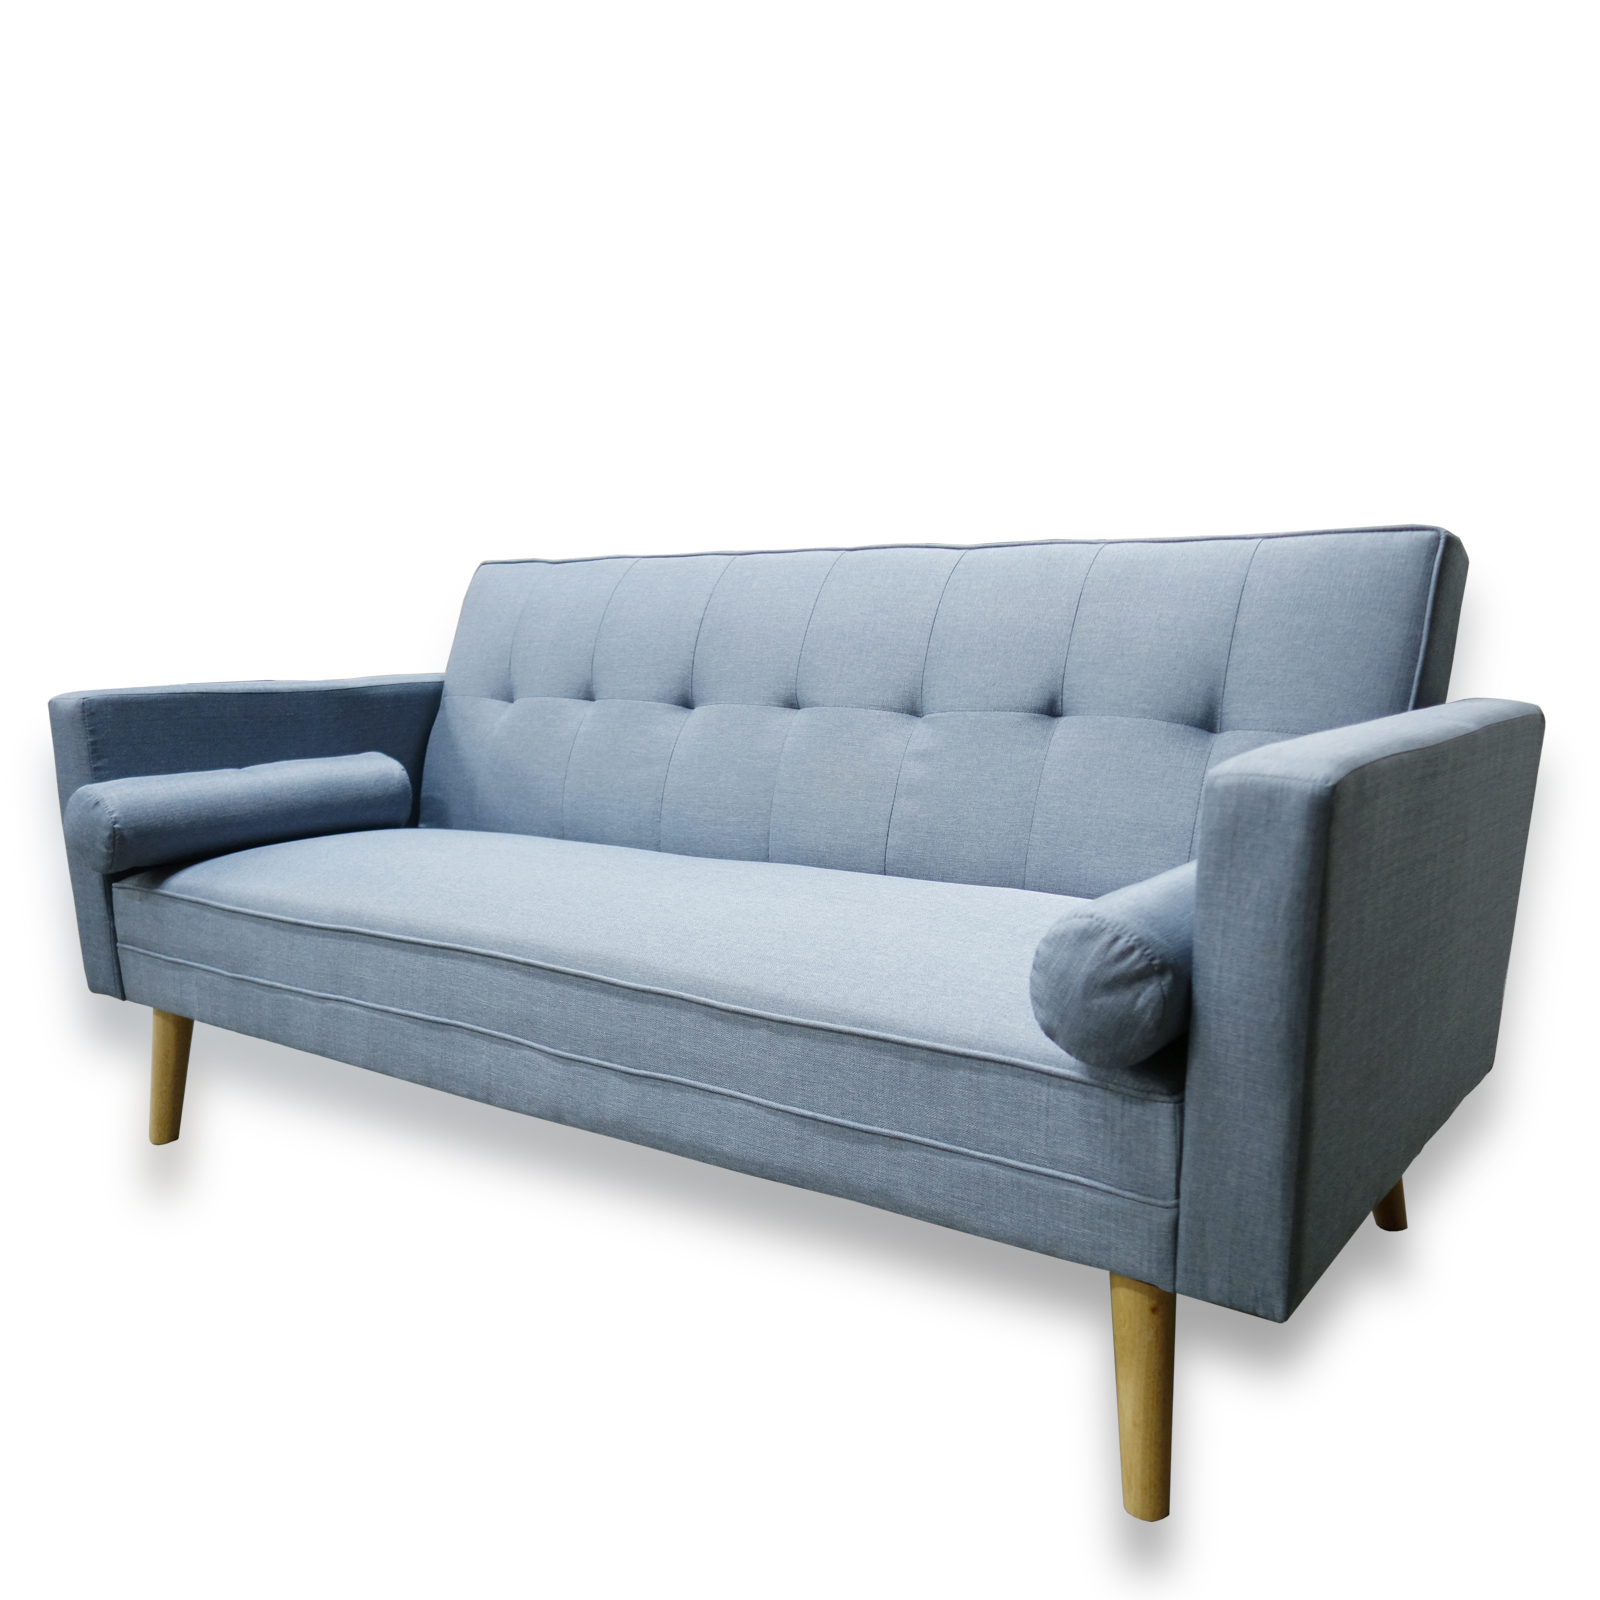 Amy Brand New Blue Or Grey Fabric Click Clack Sofa Bed Modular Fold Down Design Ebay